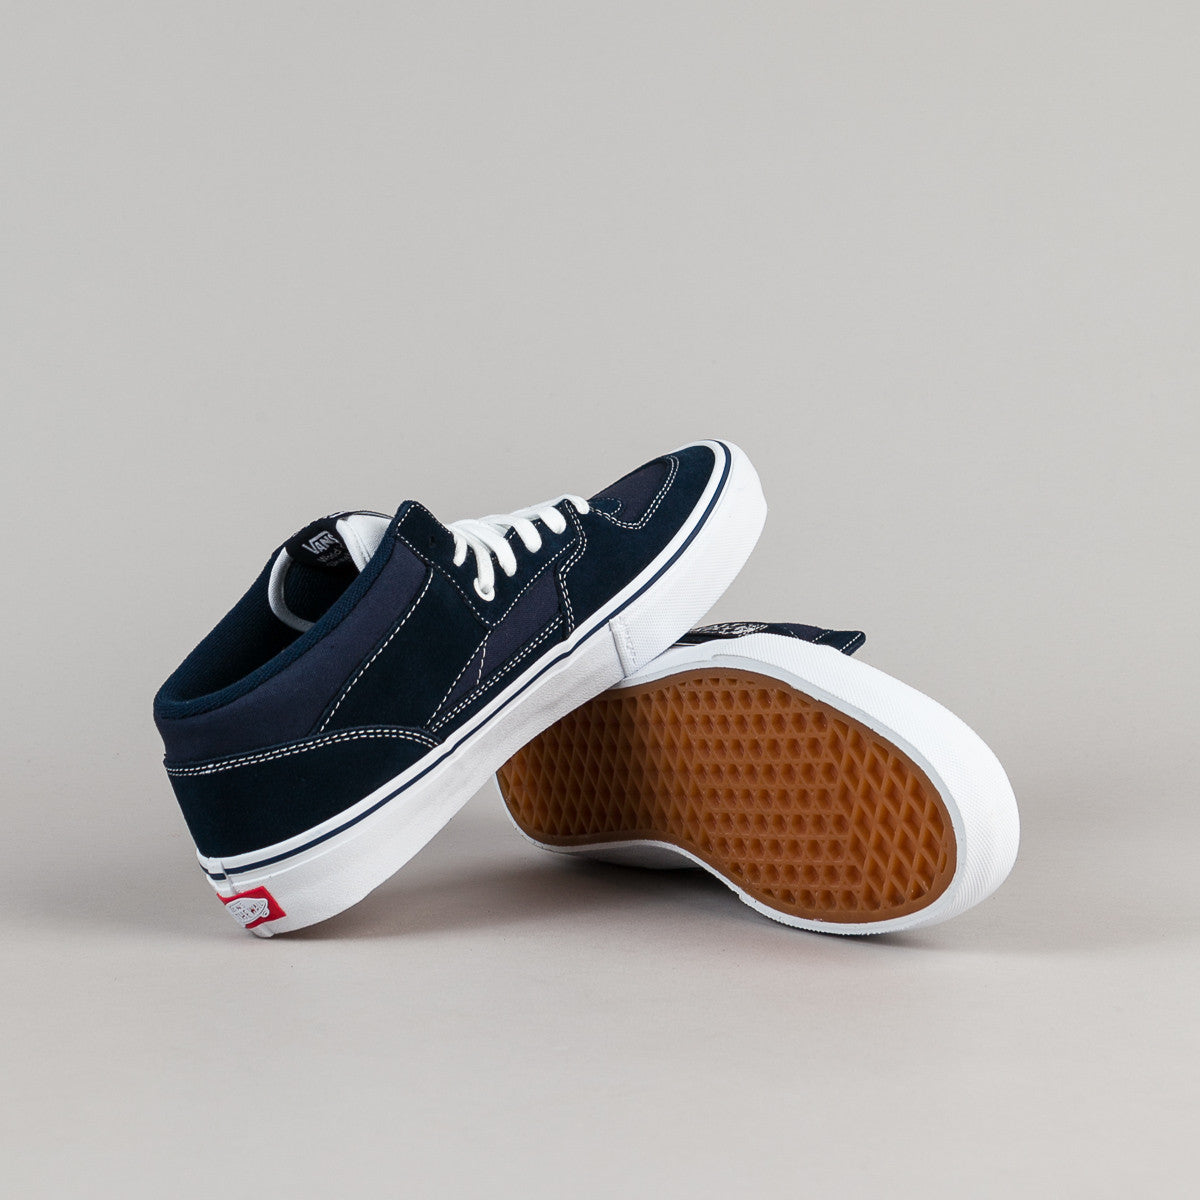 Vans Half Cab Pro Shoes - Dress Blues